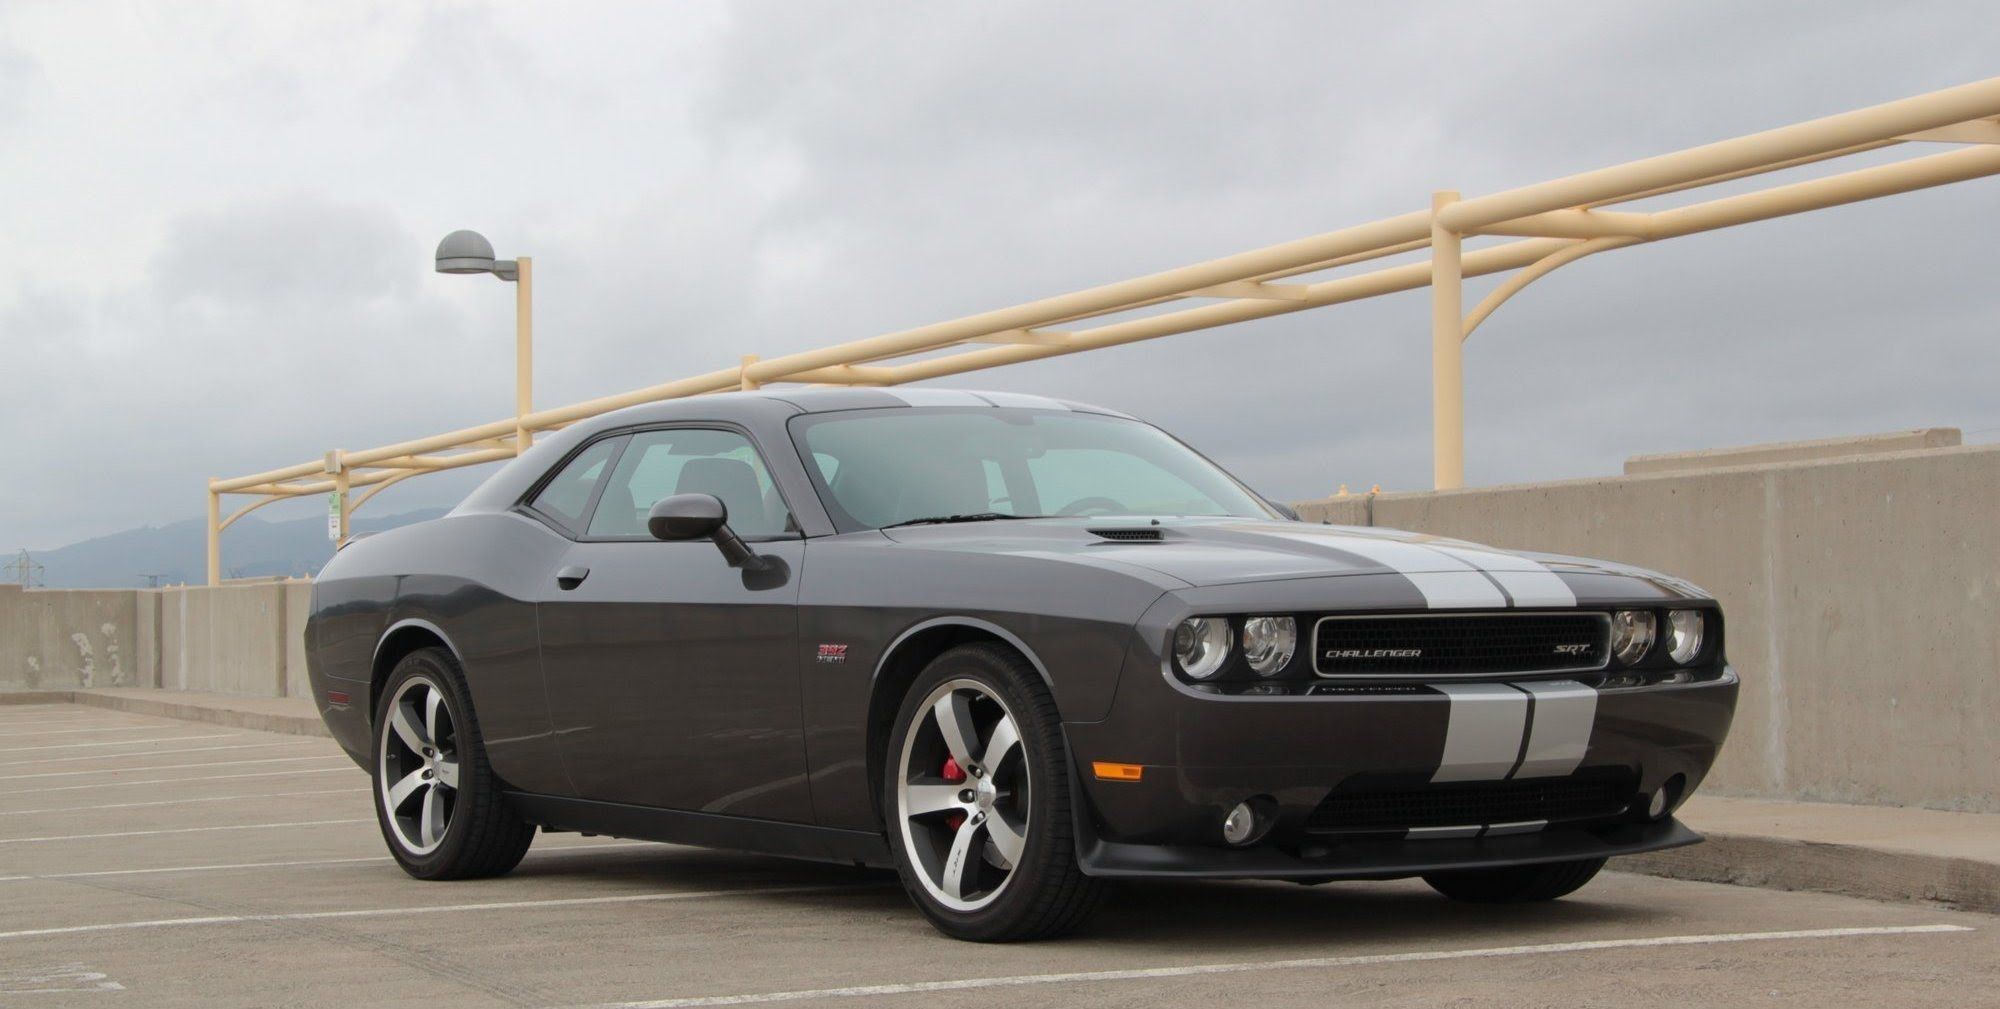 2013 2014 dodge challenger srt8 392 review and road test manual rh pinterest co uk 2014 dodge challenger owners manual 2014 dodge challenger owners manual